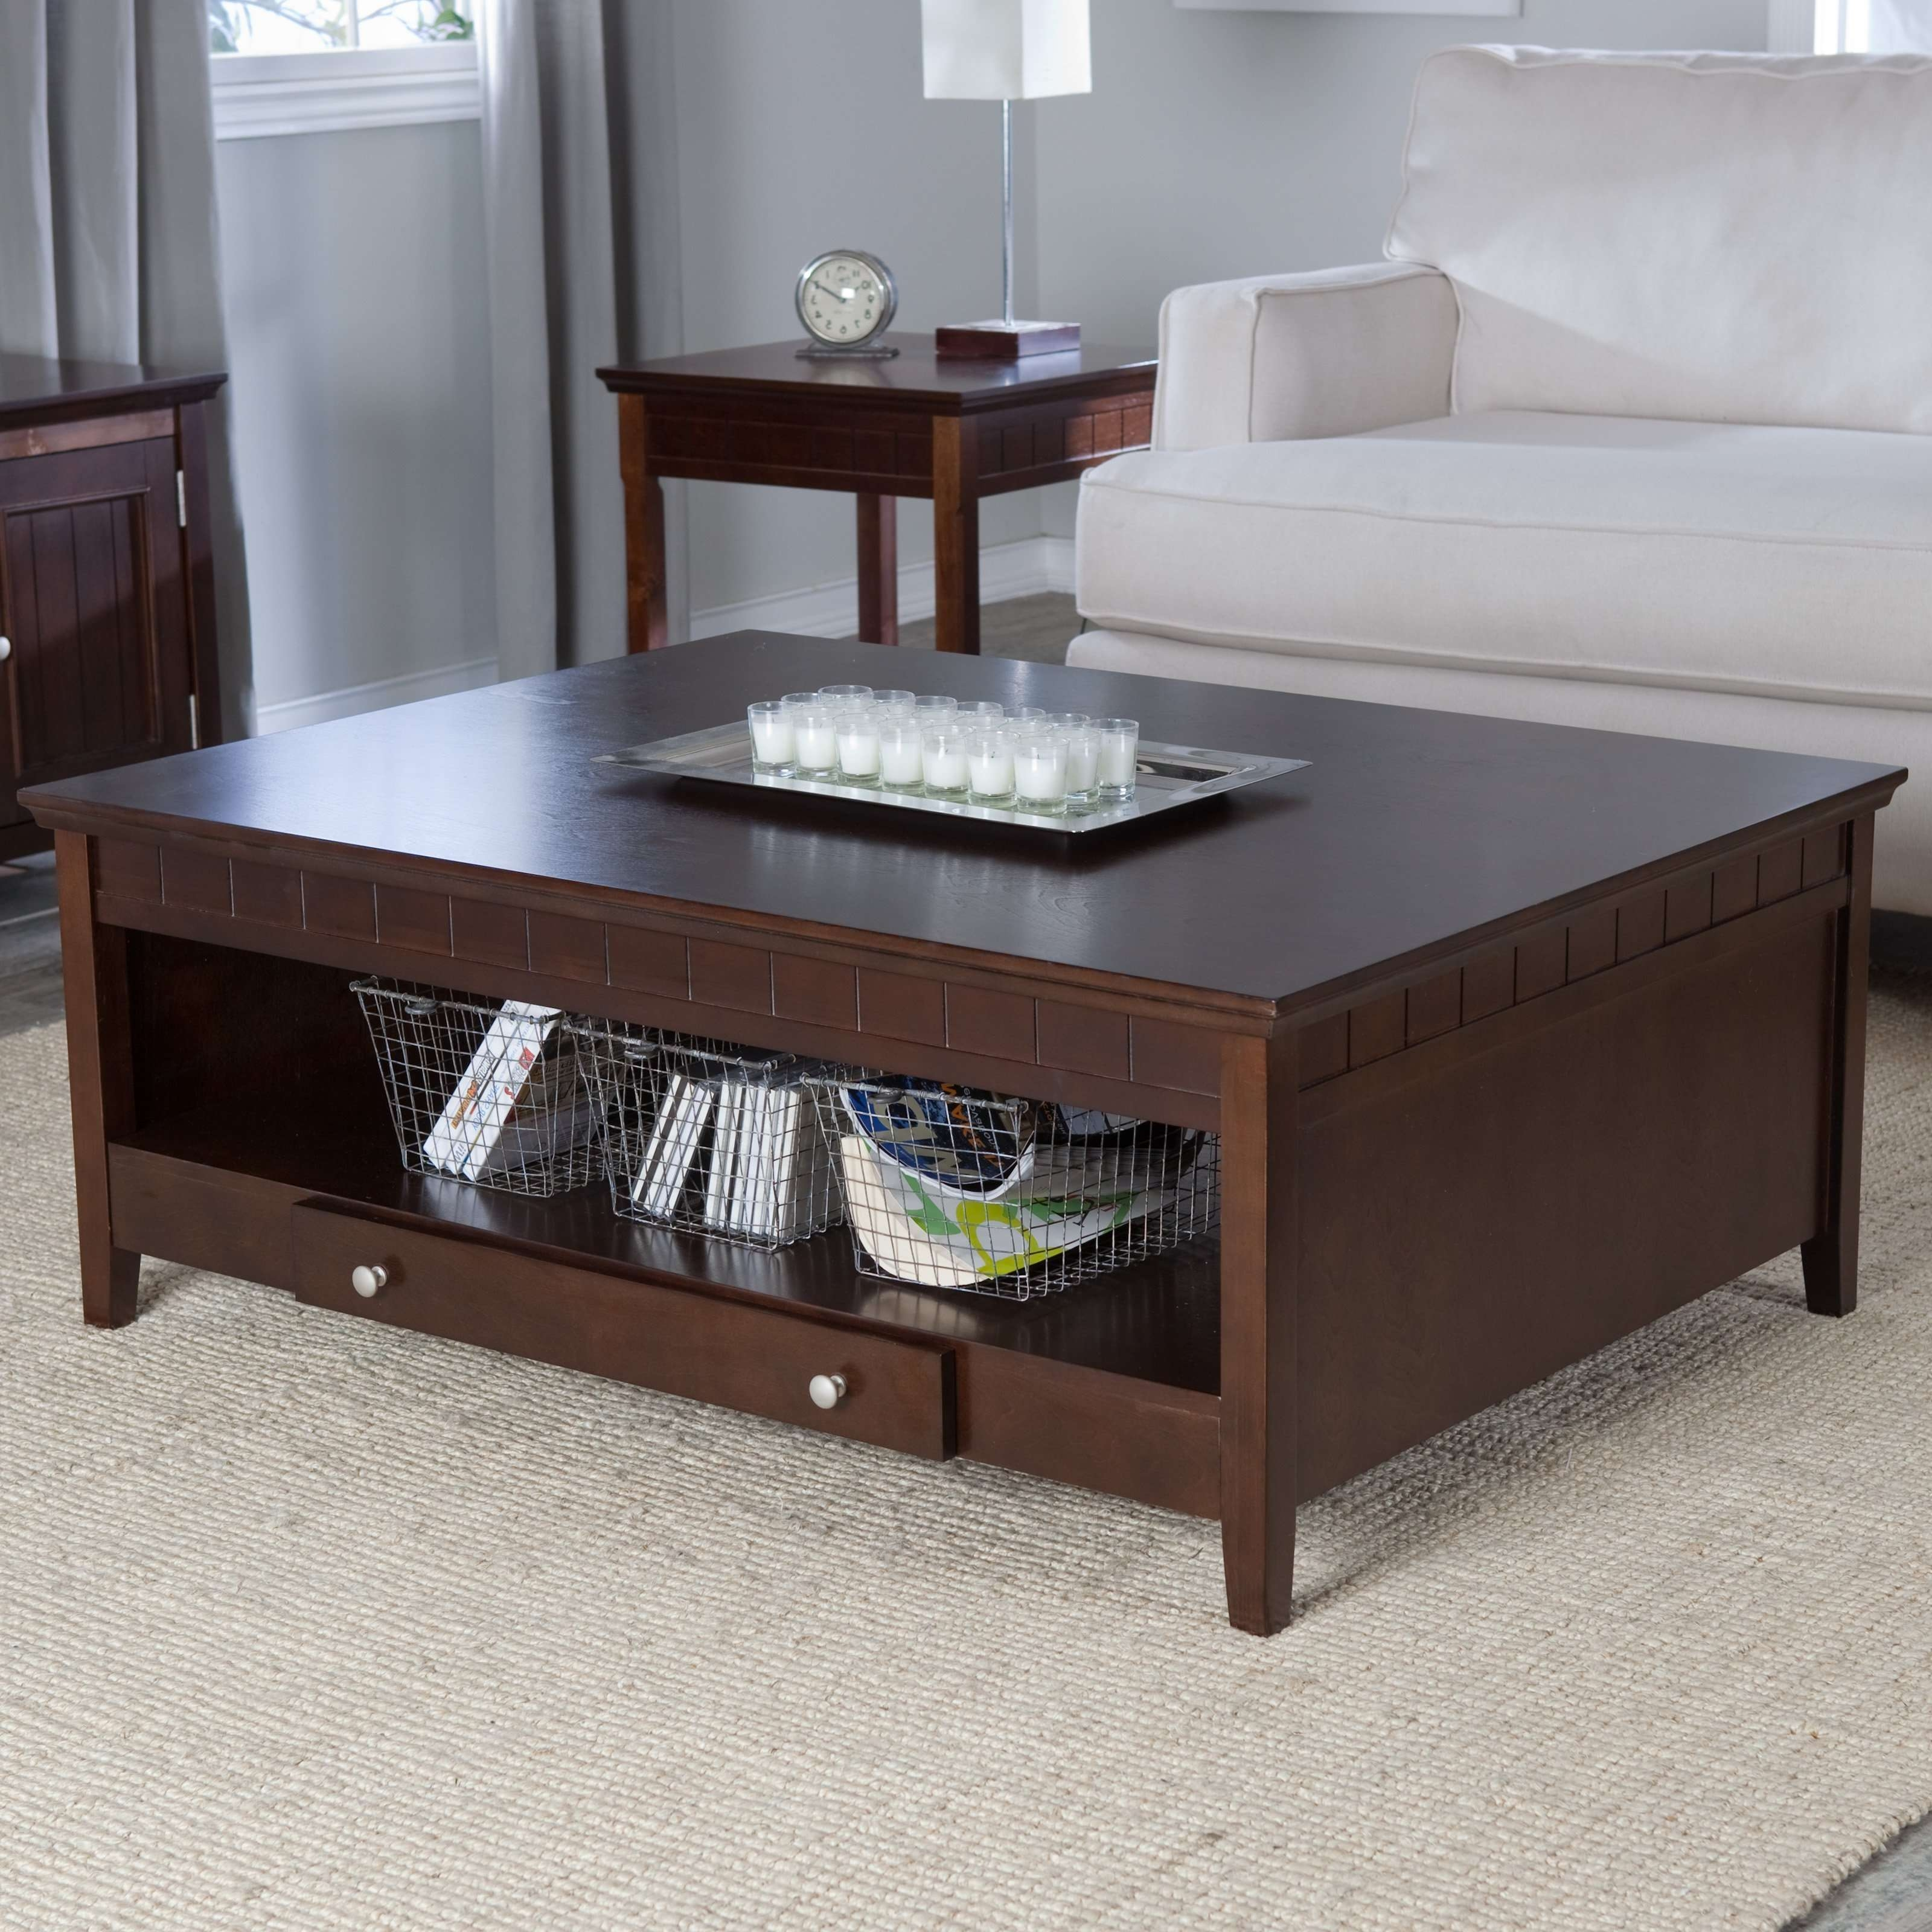 Modern Square Coffee Table With Storage With Modern Espresso With Fashionable Square Coffee Table Storages (View 15 of 20)